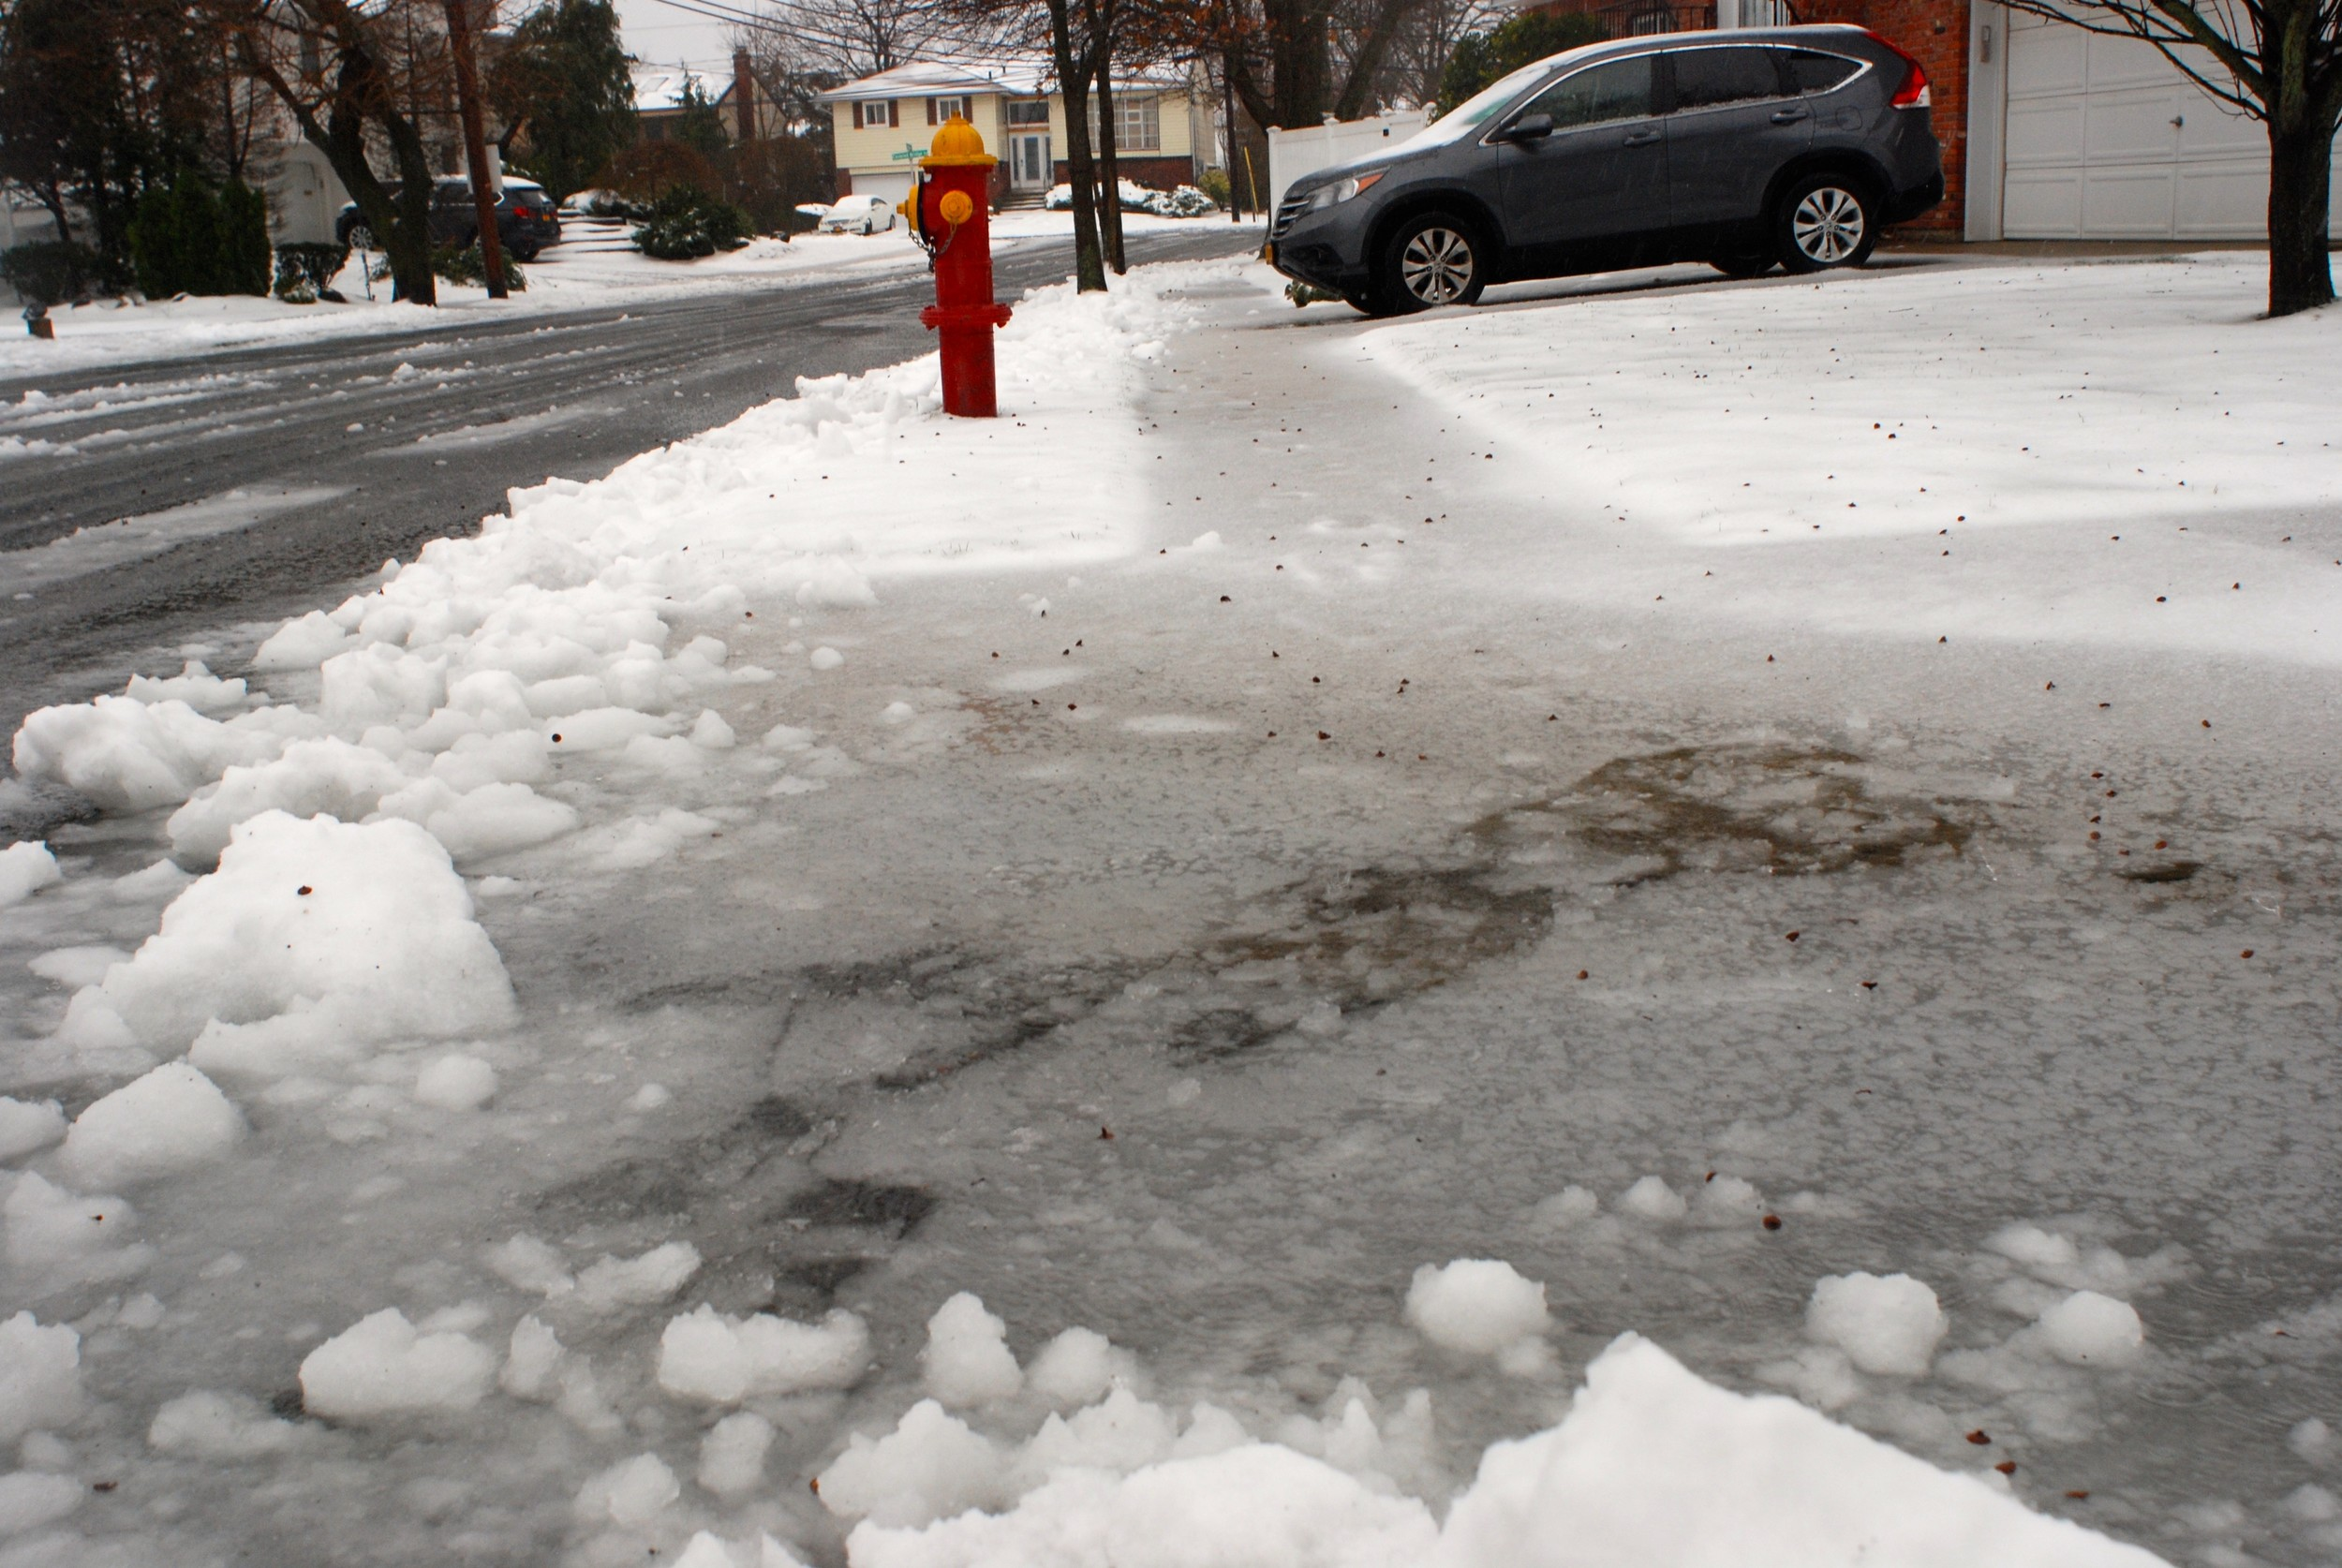 Rain and melting snow caused pooling on streets.